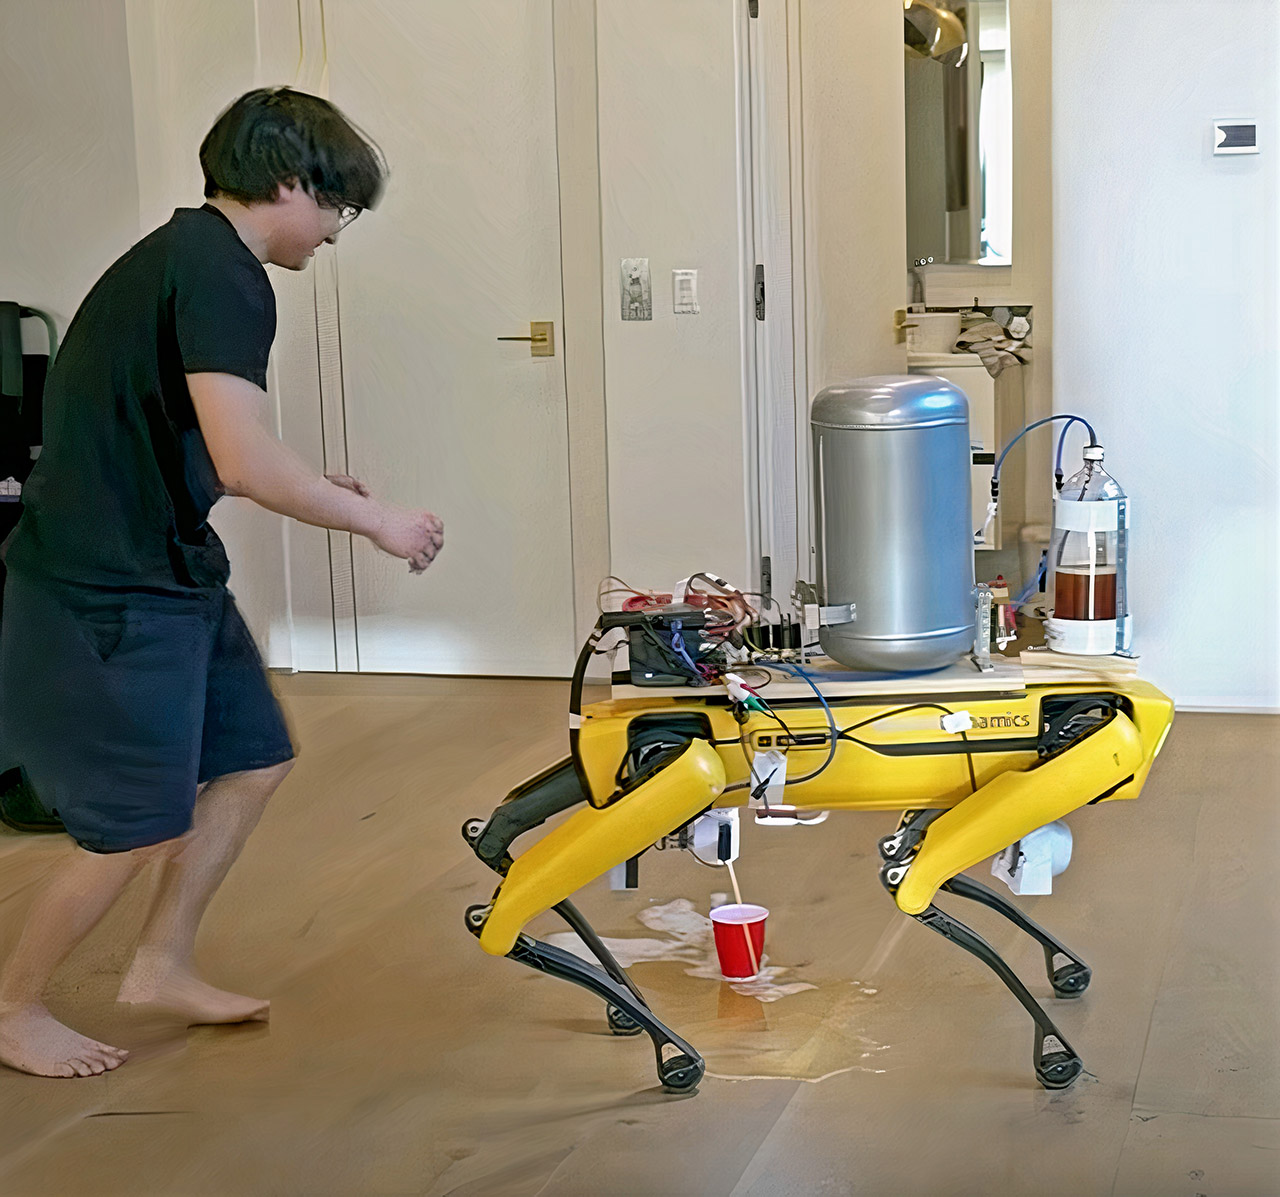 Boston Dynamics Spot Robot Beer